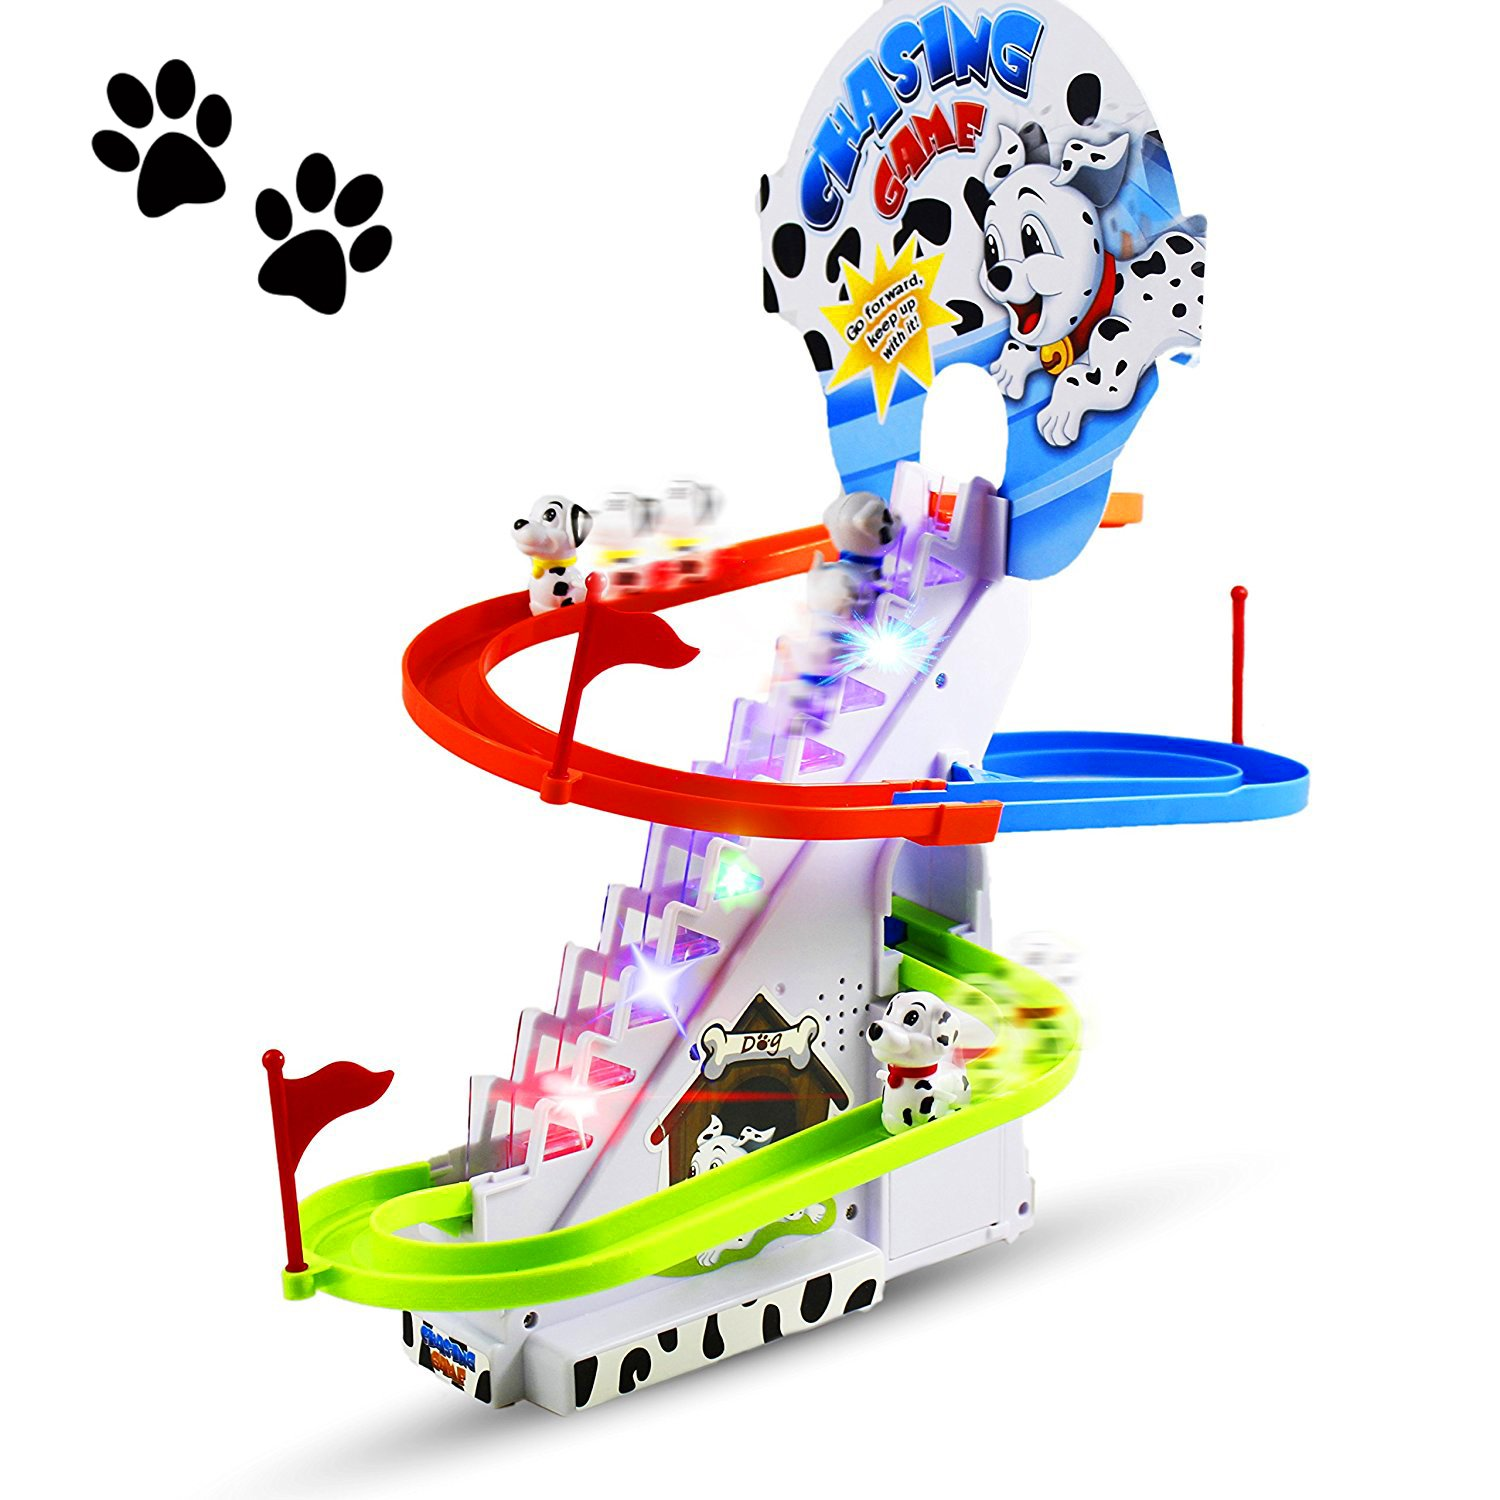 Haktoys Dalmatian Spotty Dog Chasing Game Playful Puppy Set | Upgraded Version Playful Playset with LED Flashing Lights and Music On/Off Button, Safe and Durable, Great Gift for Toddlers and Kids